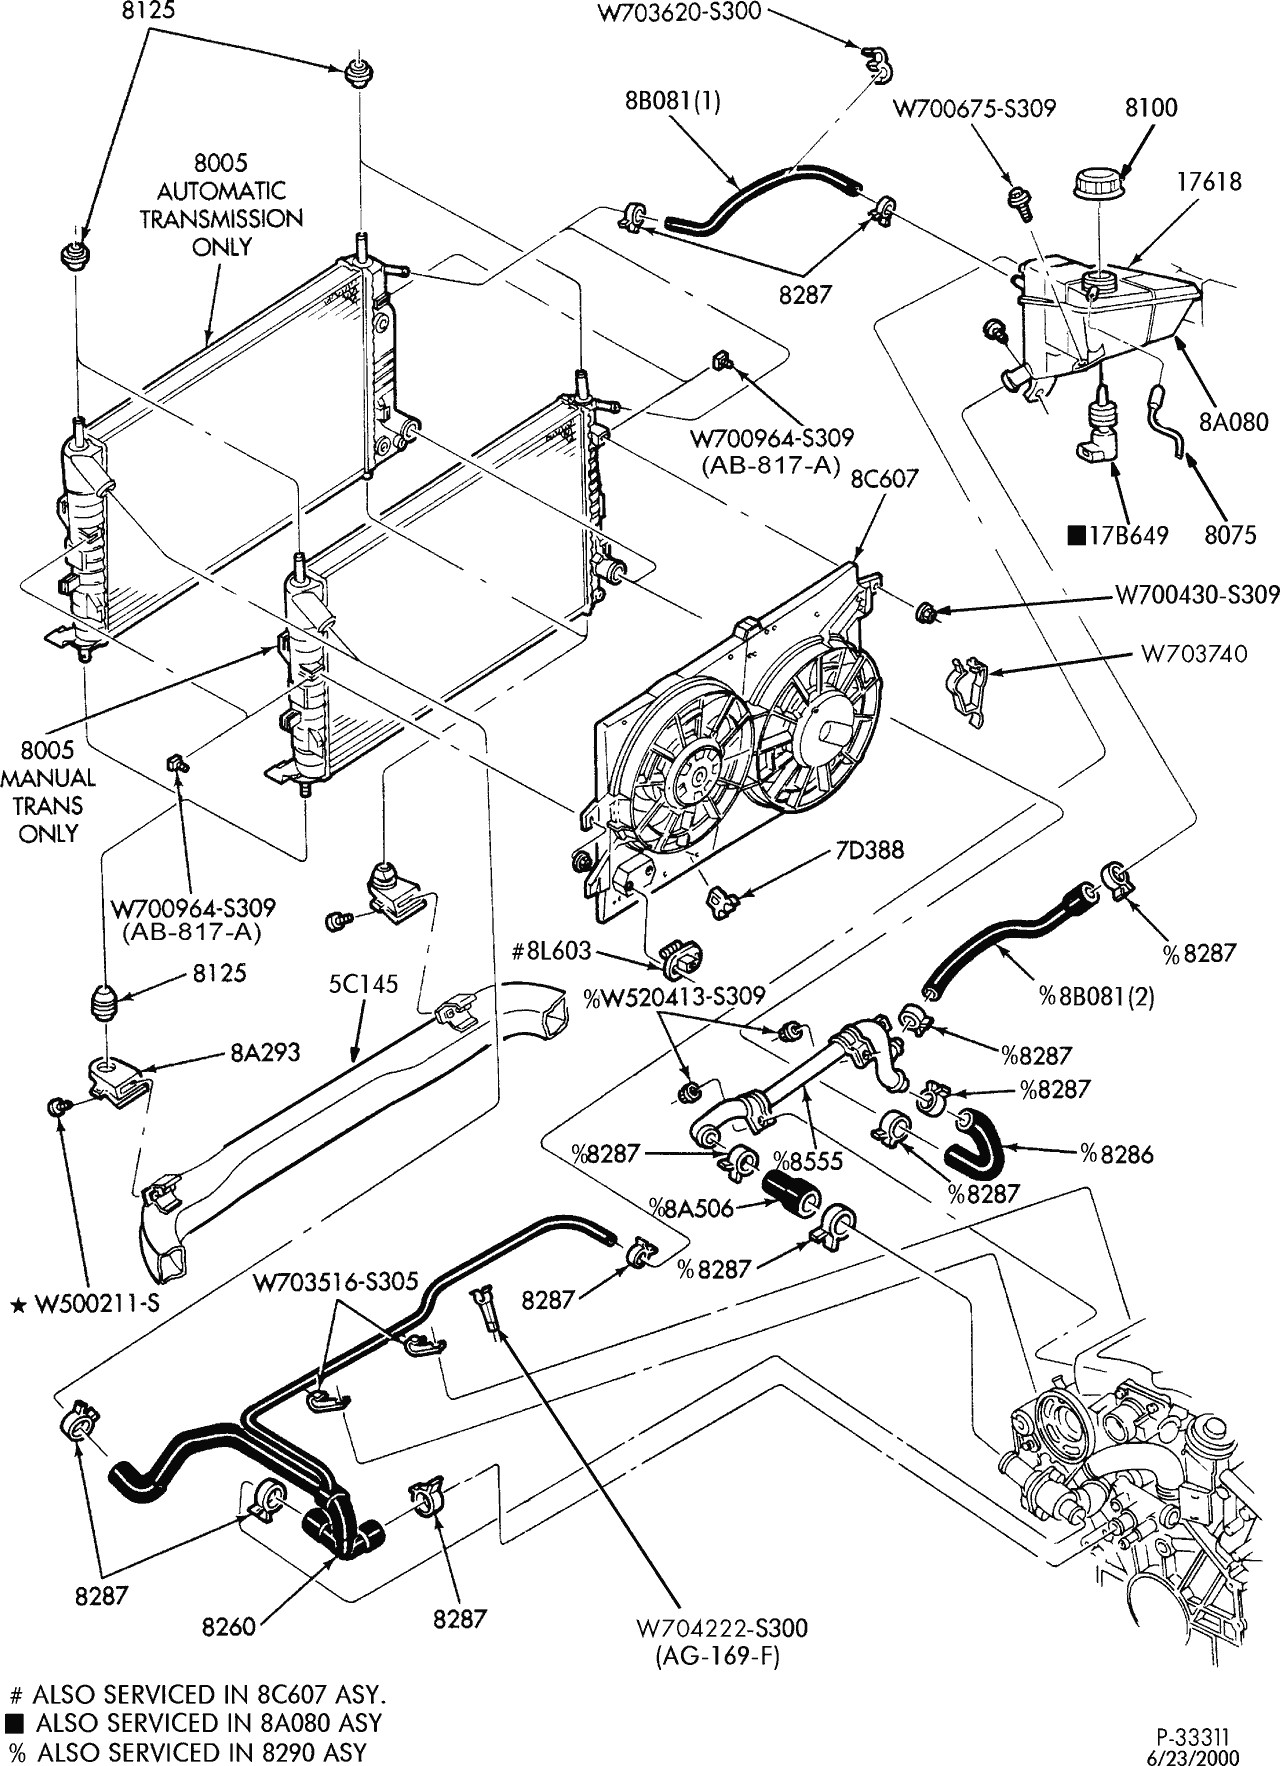 1998 Ford Contour Mercury Mystique Electrical Troubleshooting Manual Source  · 2001 Mercury Cougar Engine Diagram Do You Have A Diagram Of the Coolant  Hoses ...